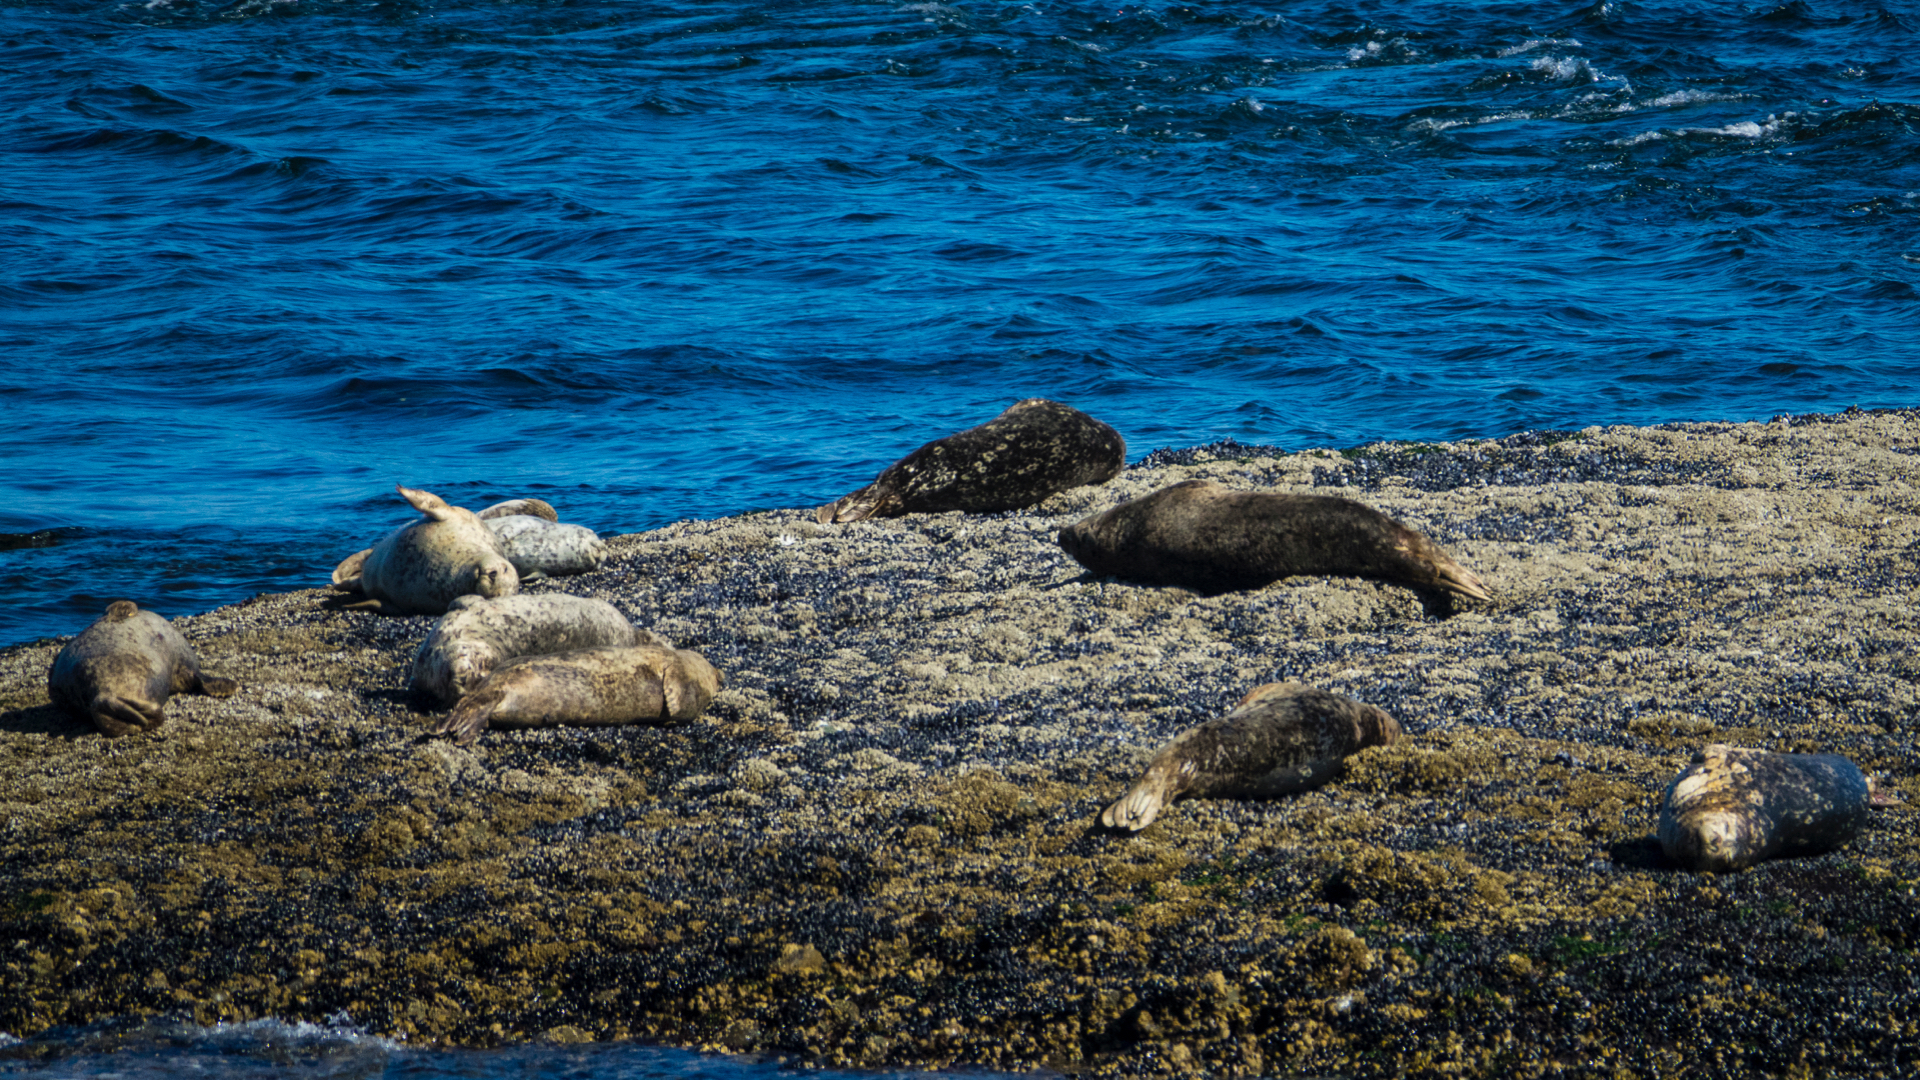 As the cemetery sits up over the water, you get a great view of the seals on the rocks.